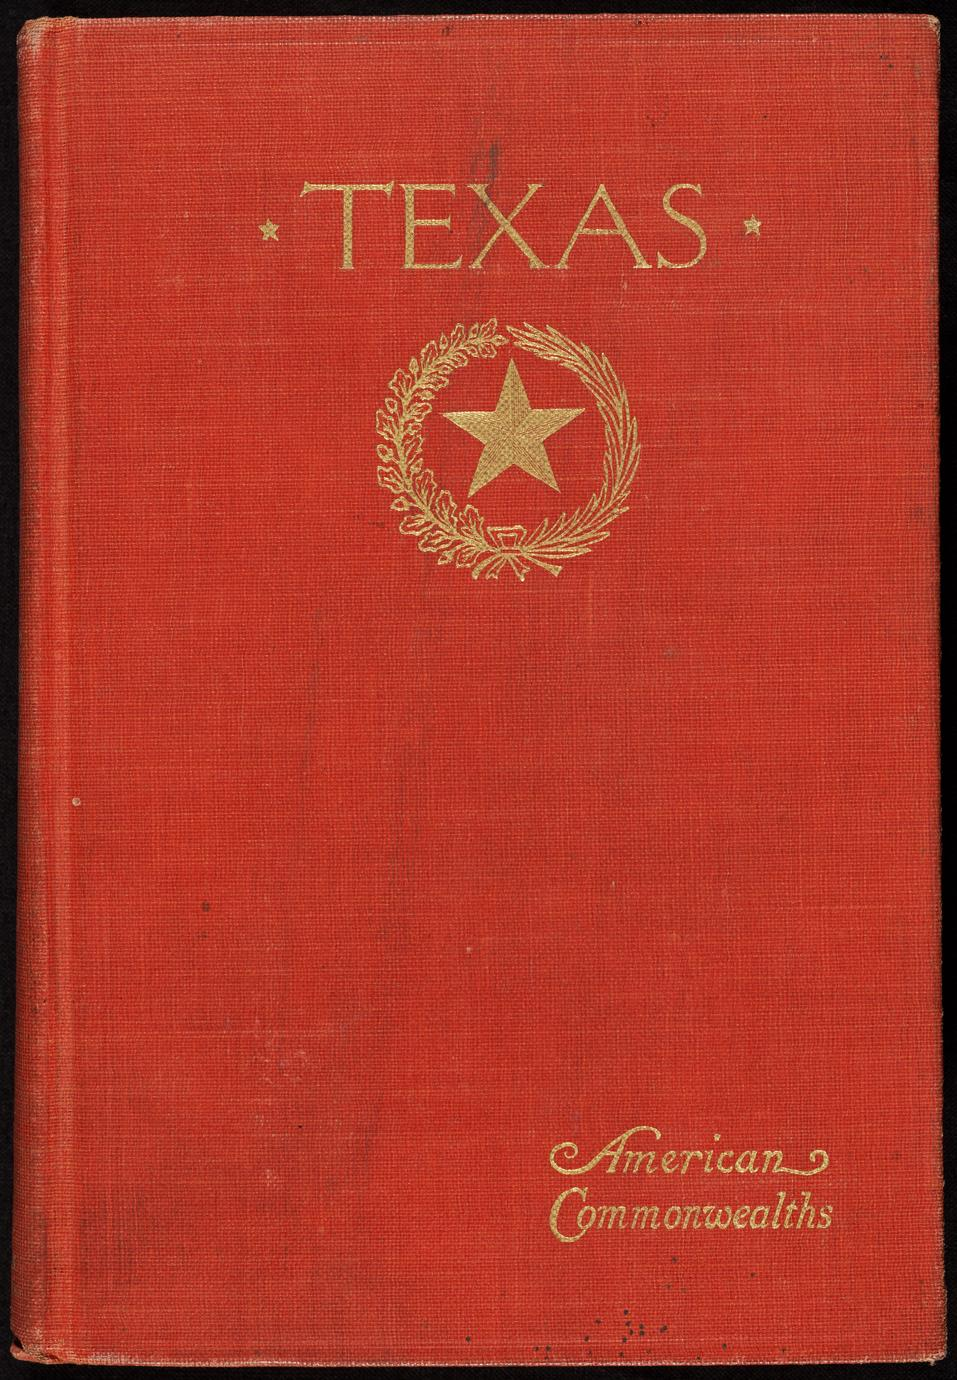 Texas : a contest of civilizations (1 of 2)